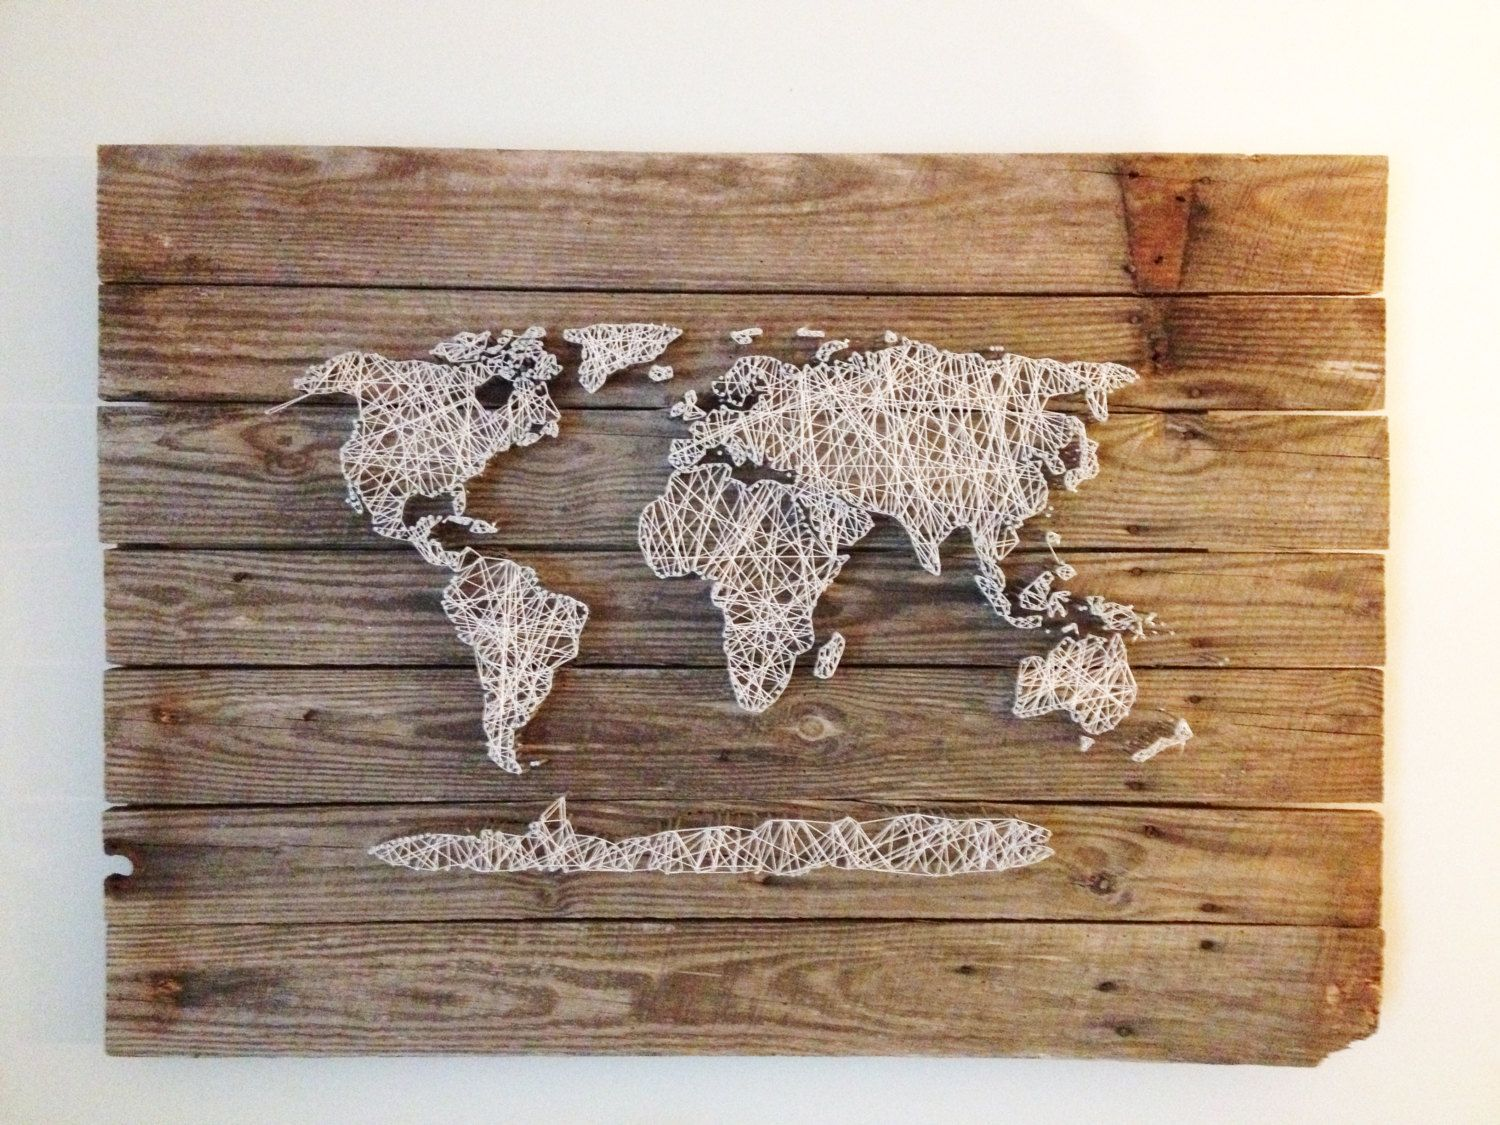 World Map Reclaimed Barn Door Wood String Art Wall Decor, 39 x 29. $450.00